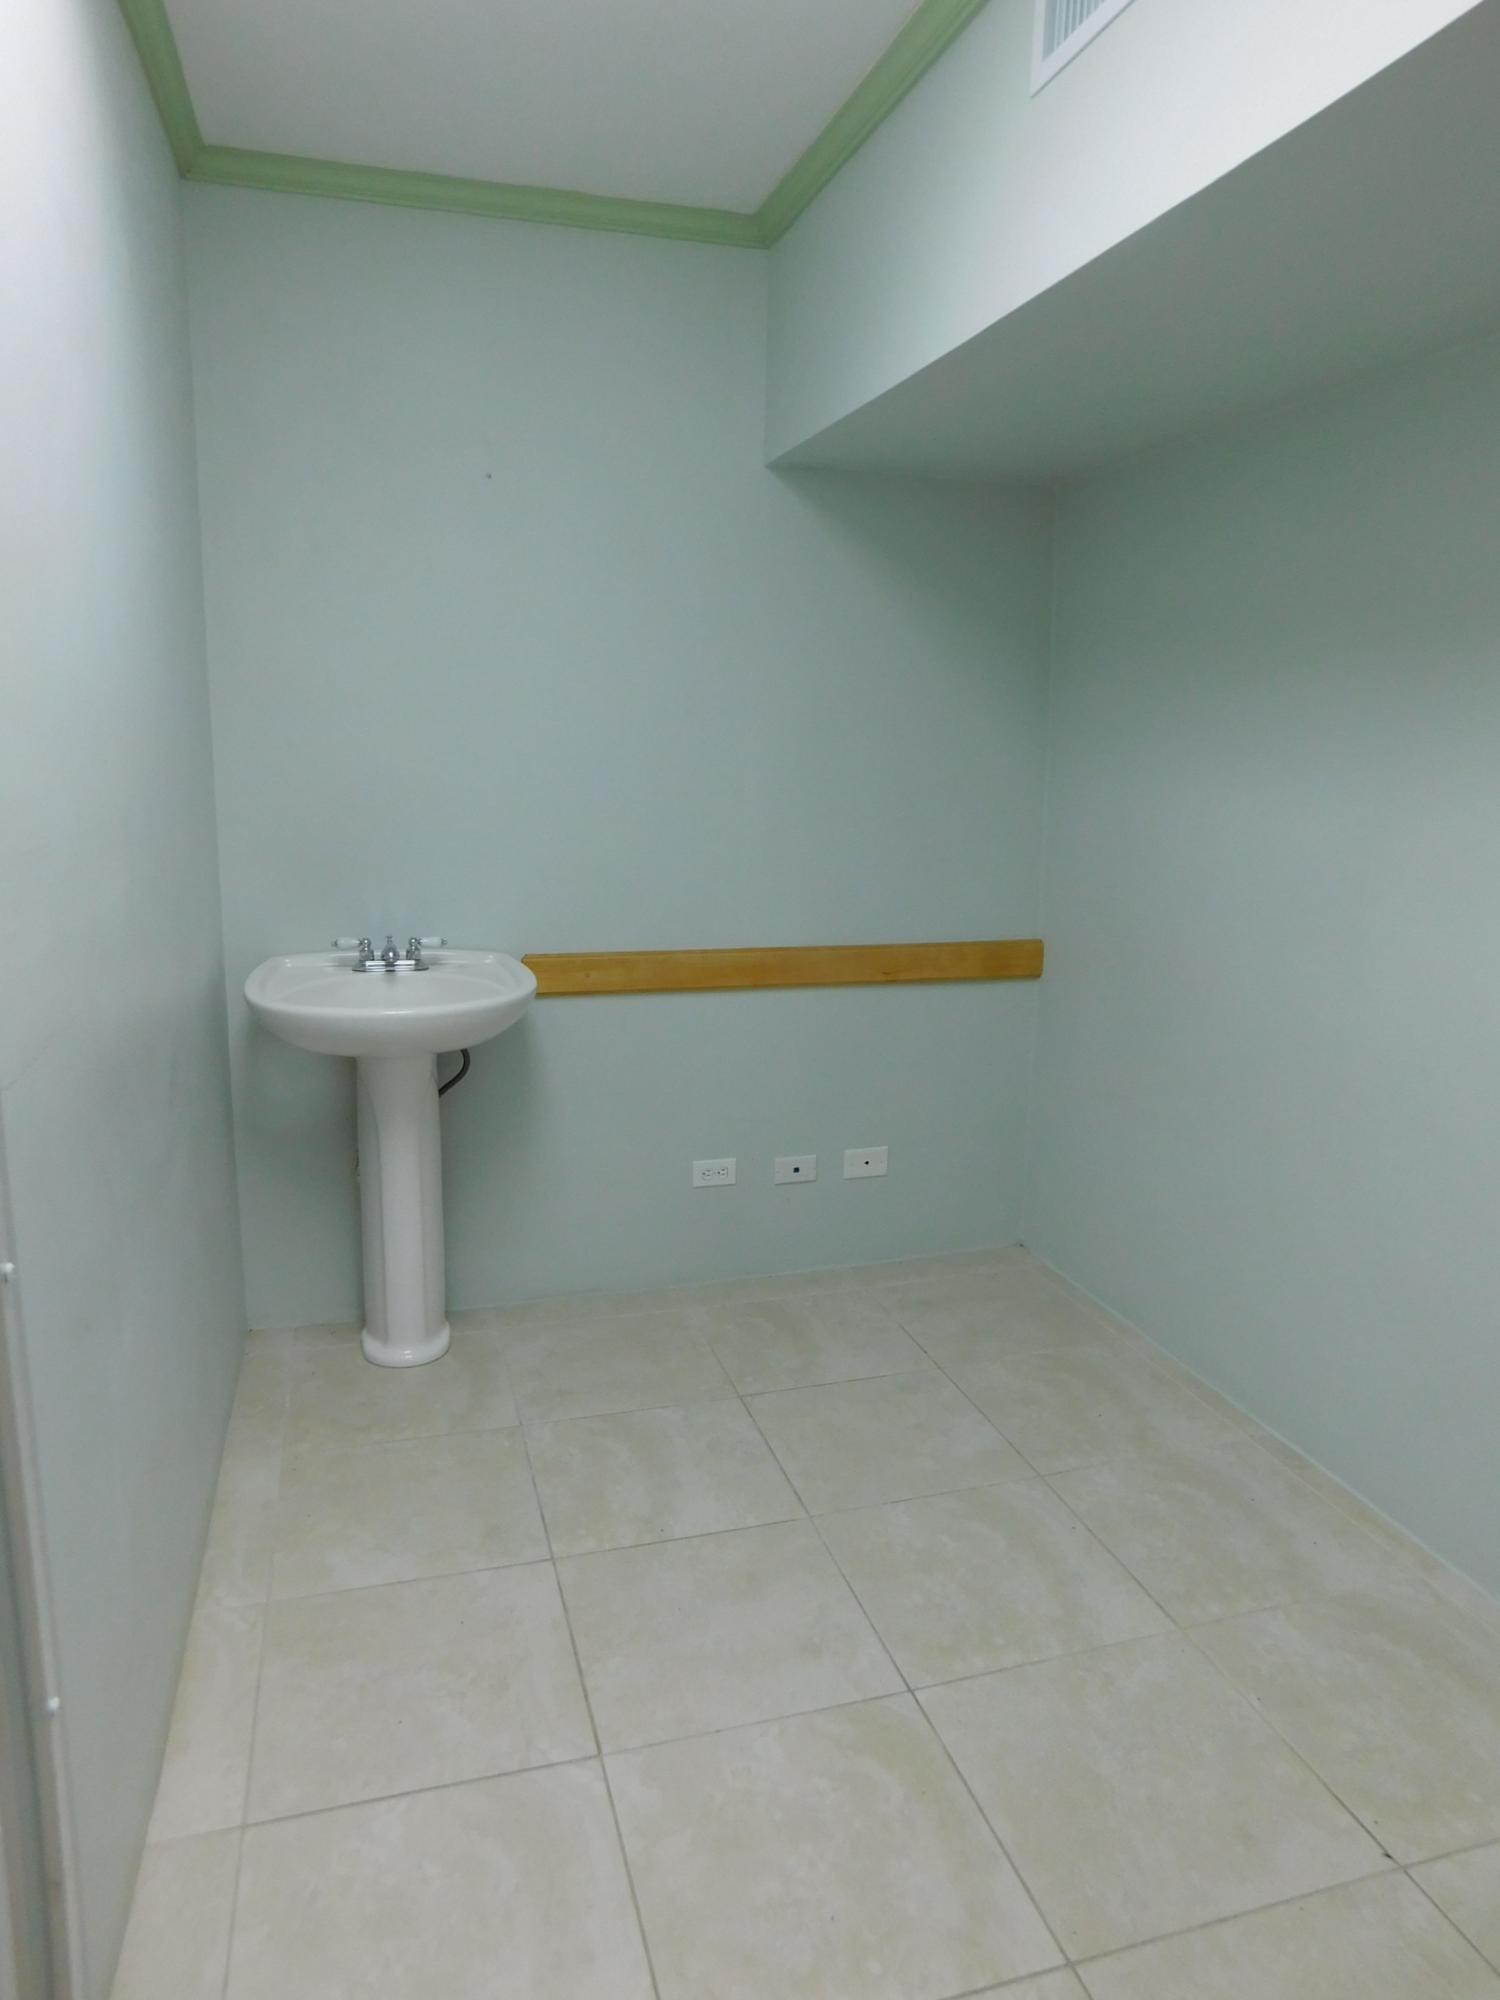 6th st 2nd exam room